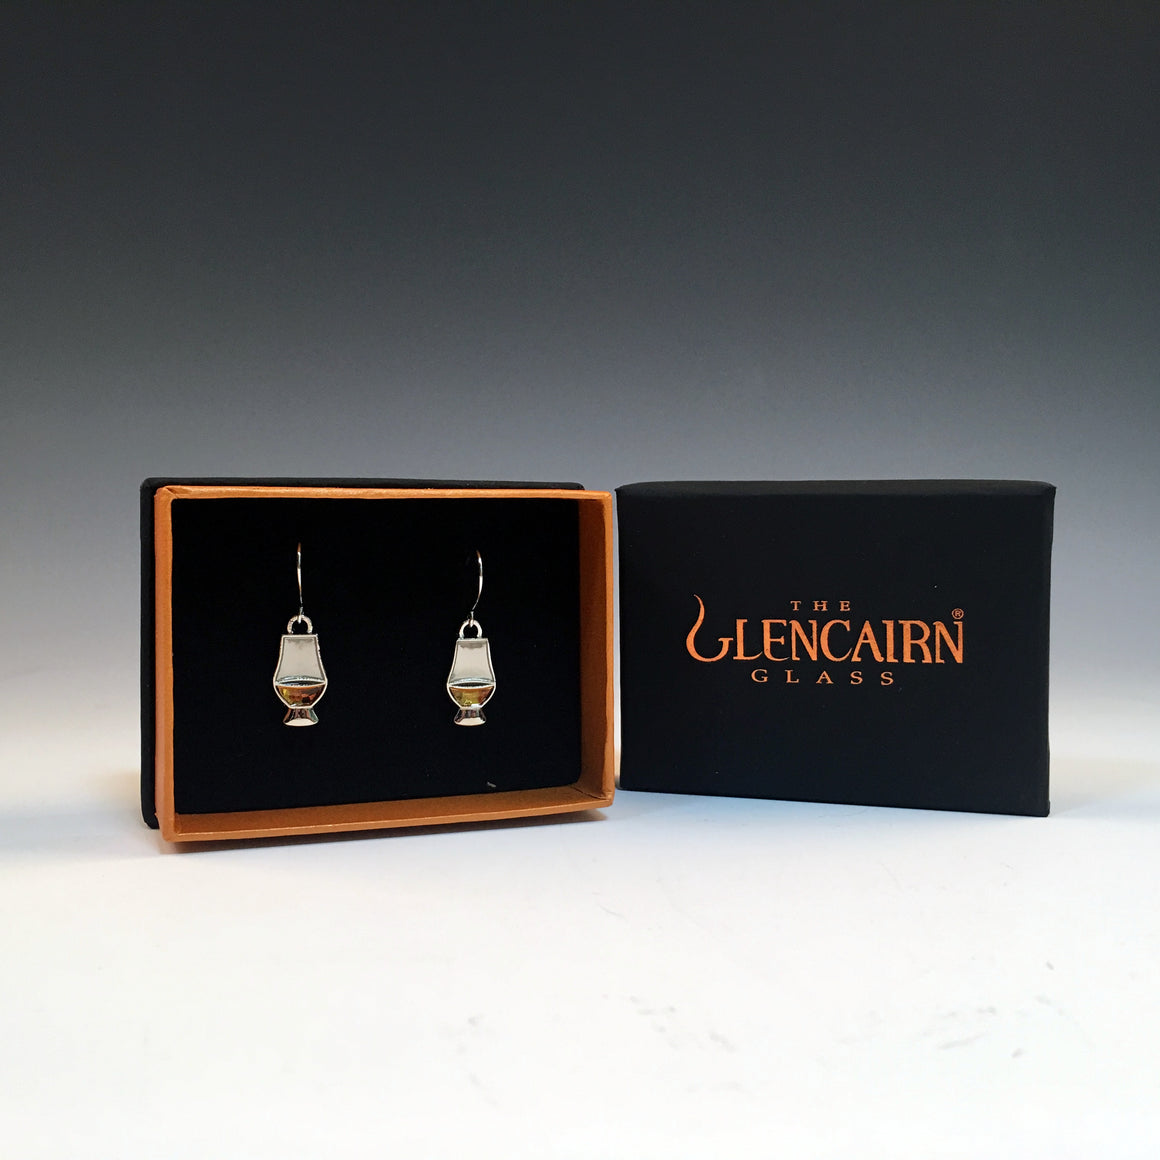 Glencairn Glass Whisky Glass Earrings